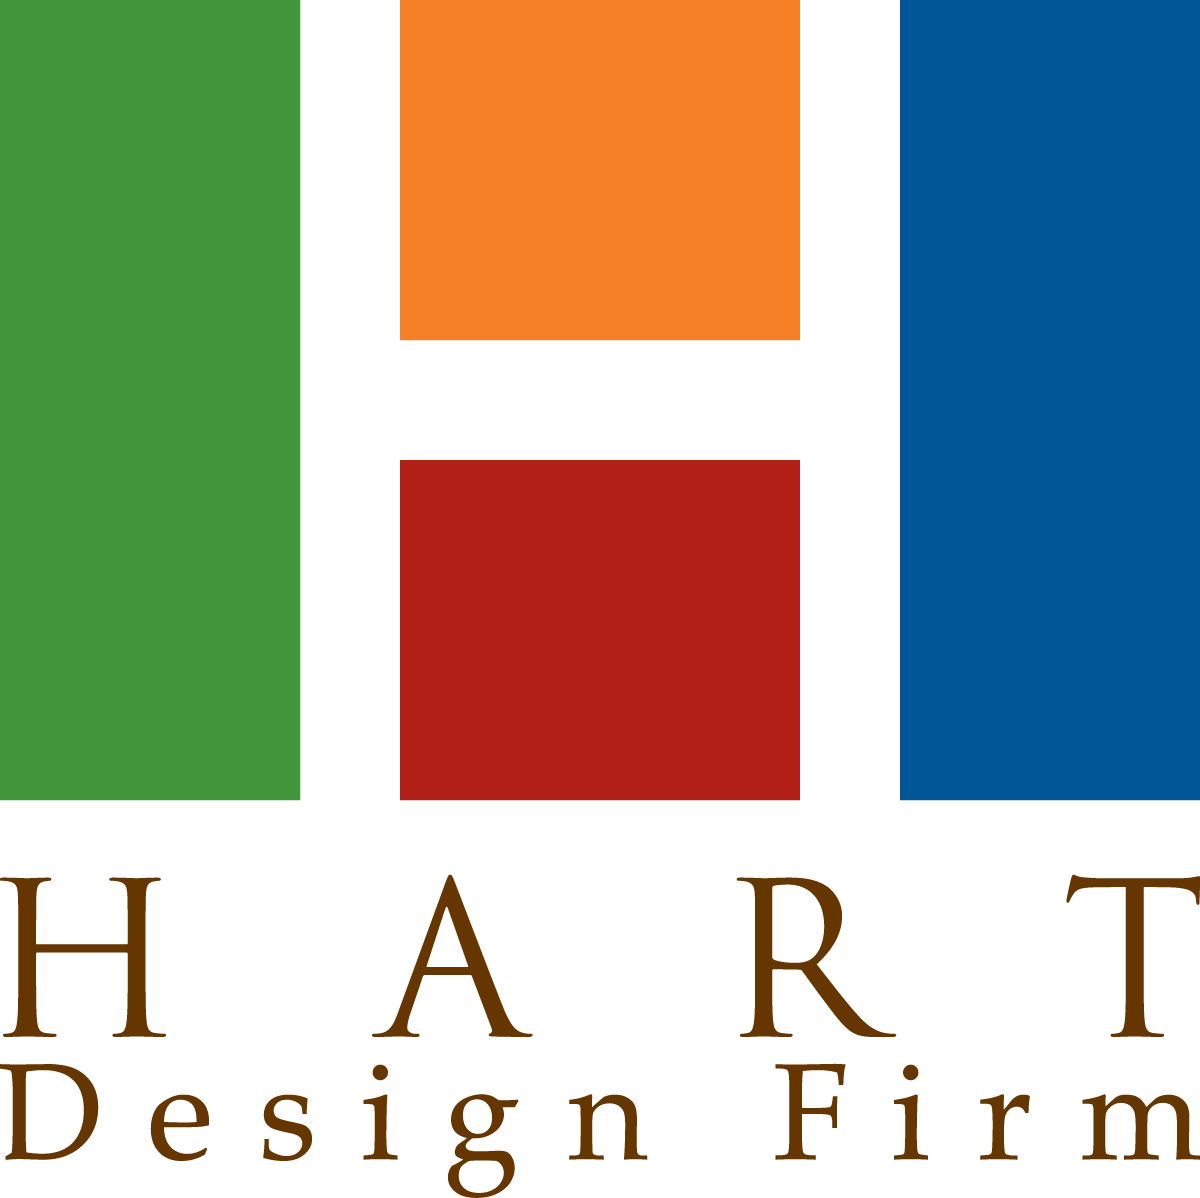 Graphic designer | HART Design Firm